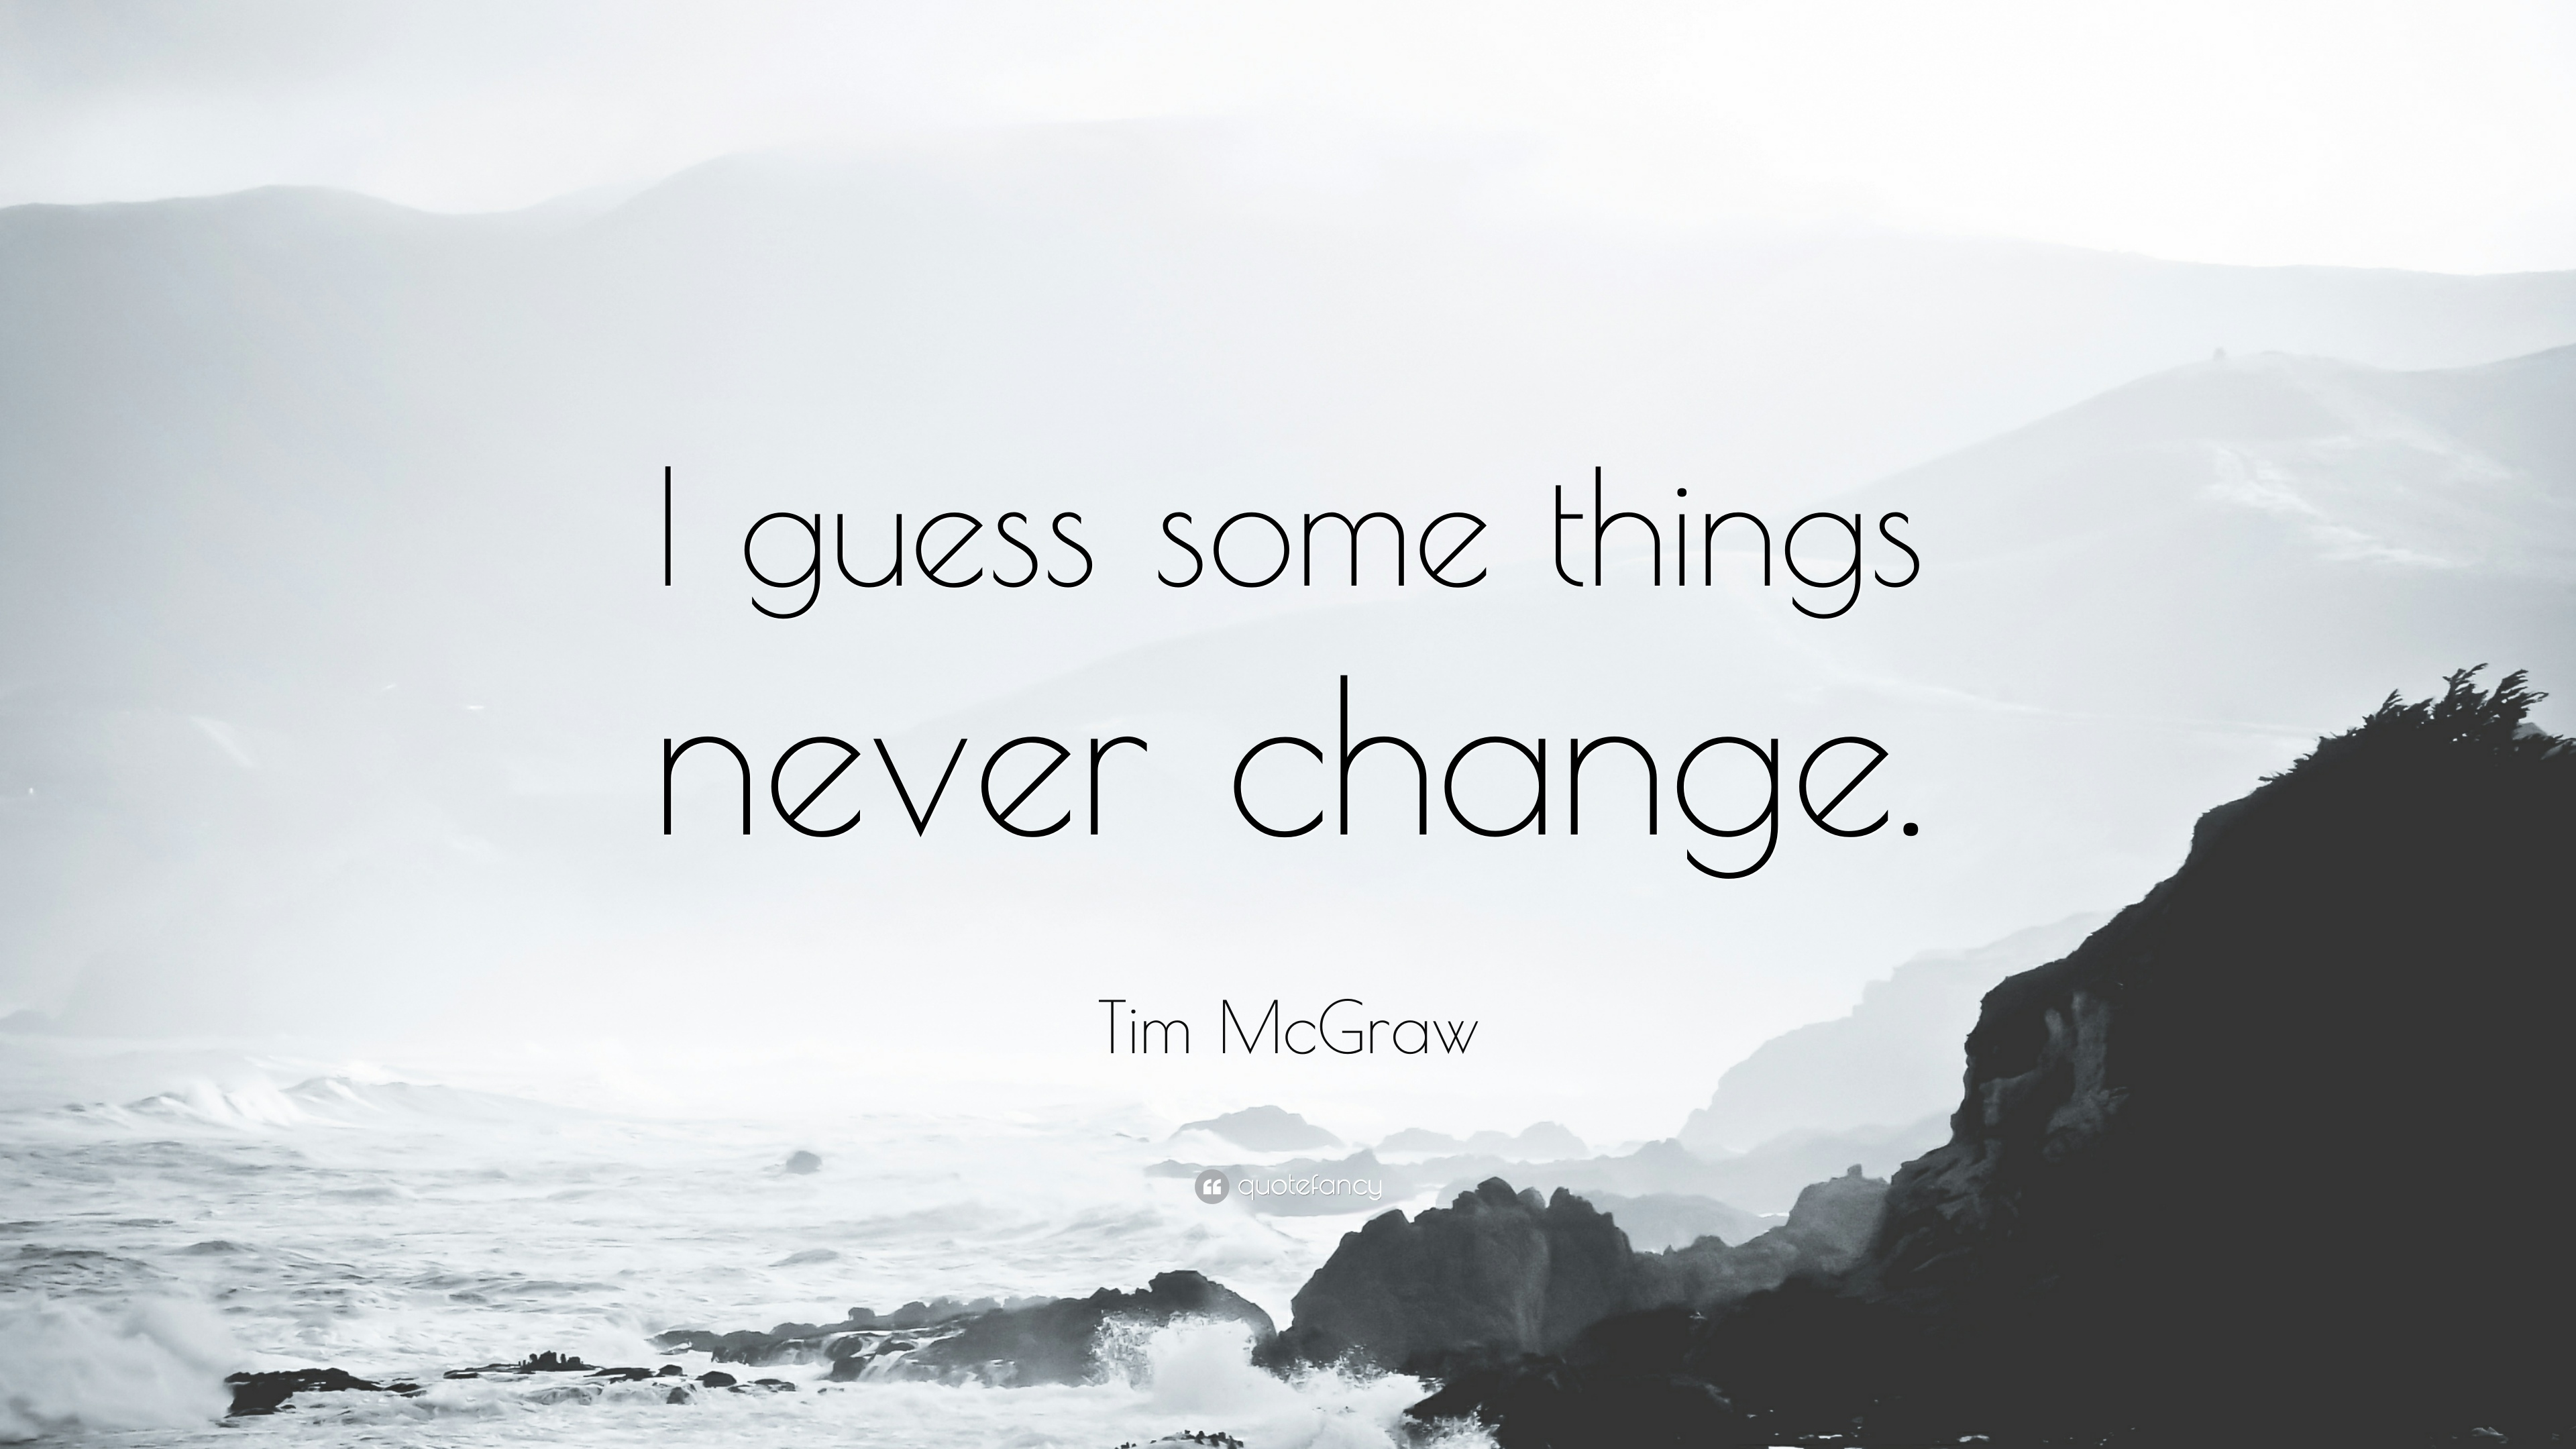 Tim Mcgraw Quote I Guess Some Things Never Change 7 Wallpapers